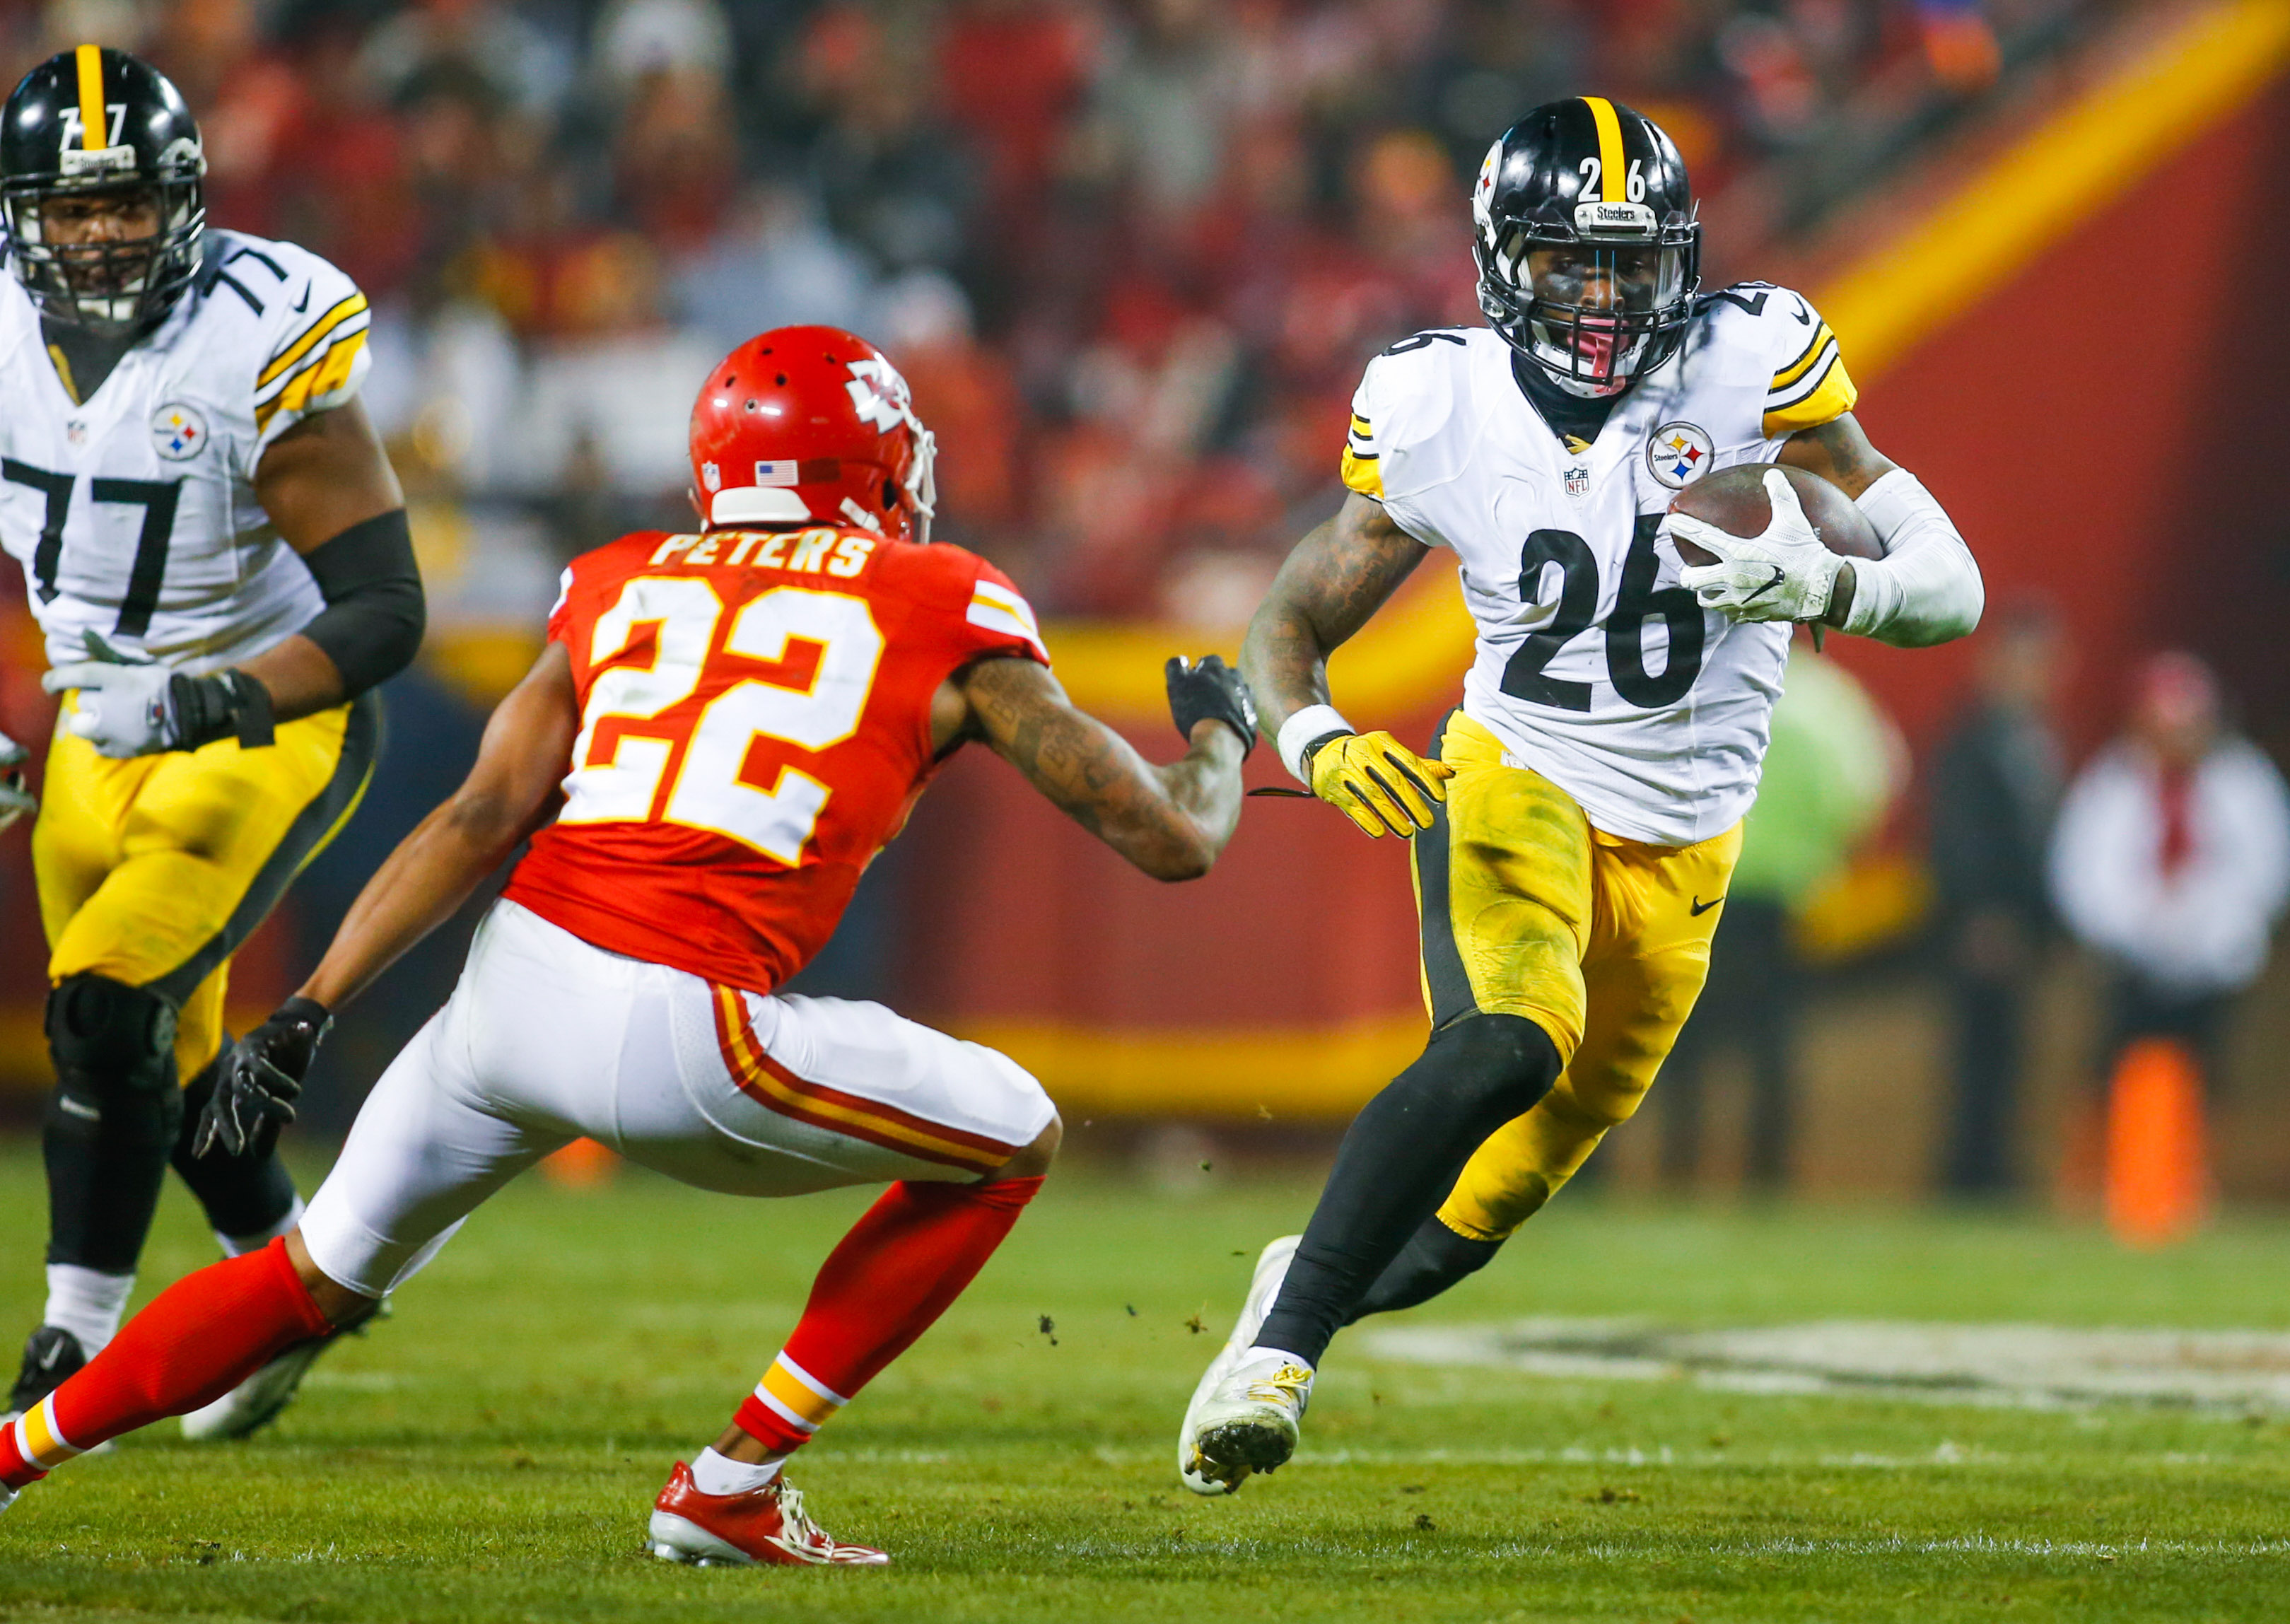 9830449-nfl-afc-divisional-pittsburgh-steelers-at-kansas-city-chiefs